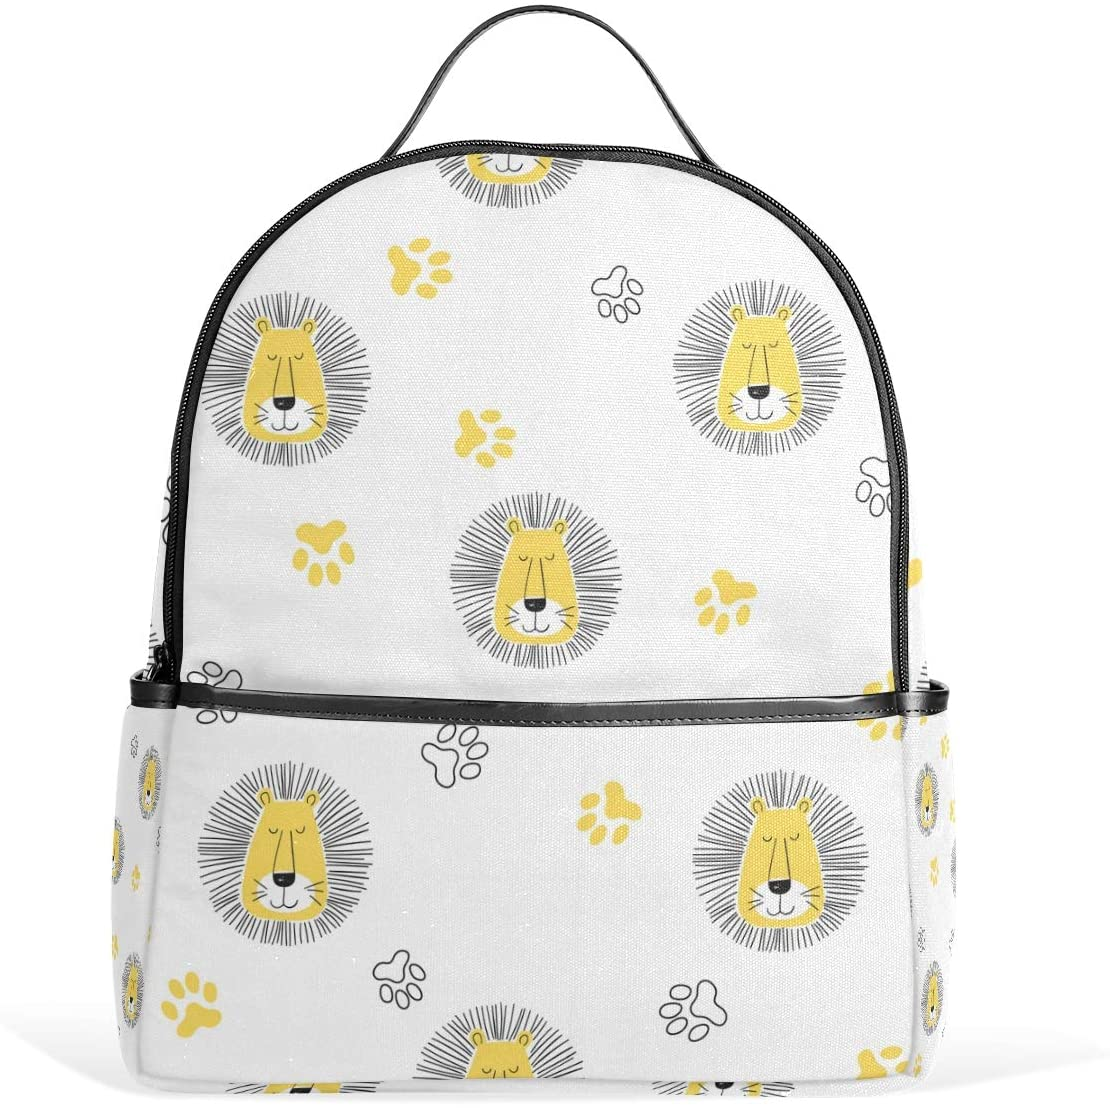 Kids' School Backpack Cartoon Lion Bookbag for Boys Girls Lightweight Casual Travel Bag Large Capacity Daypack